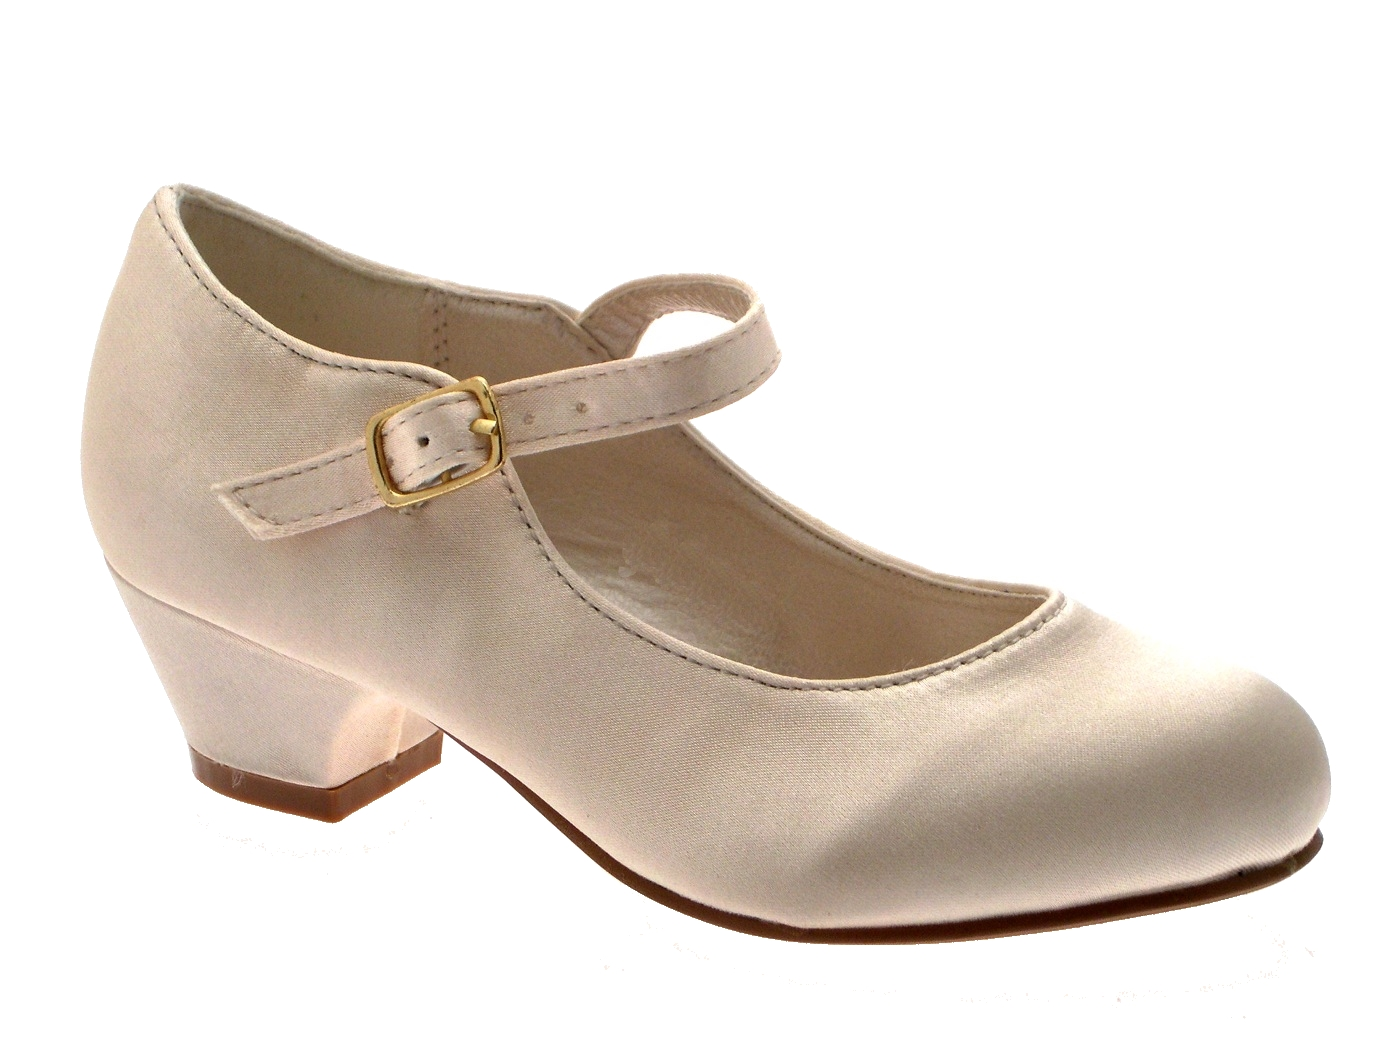 GIRLS KIDS MARY JANE PARTY SATIN SHOES BRIDESMAIDS SMALL HEELS WEDDING SIZE 8 2